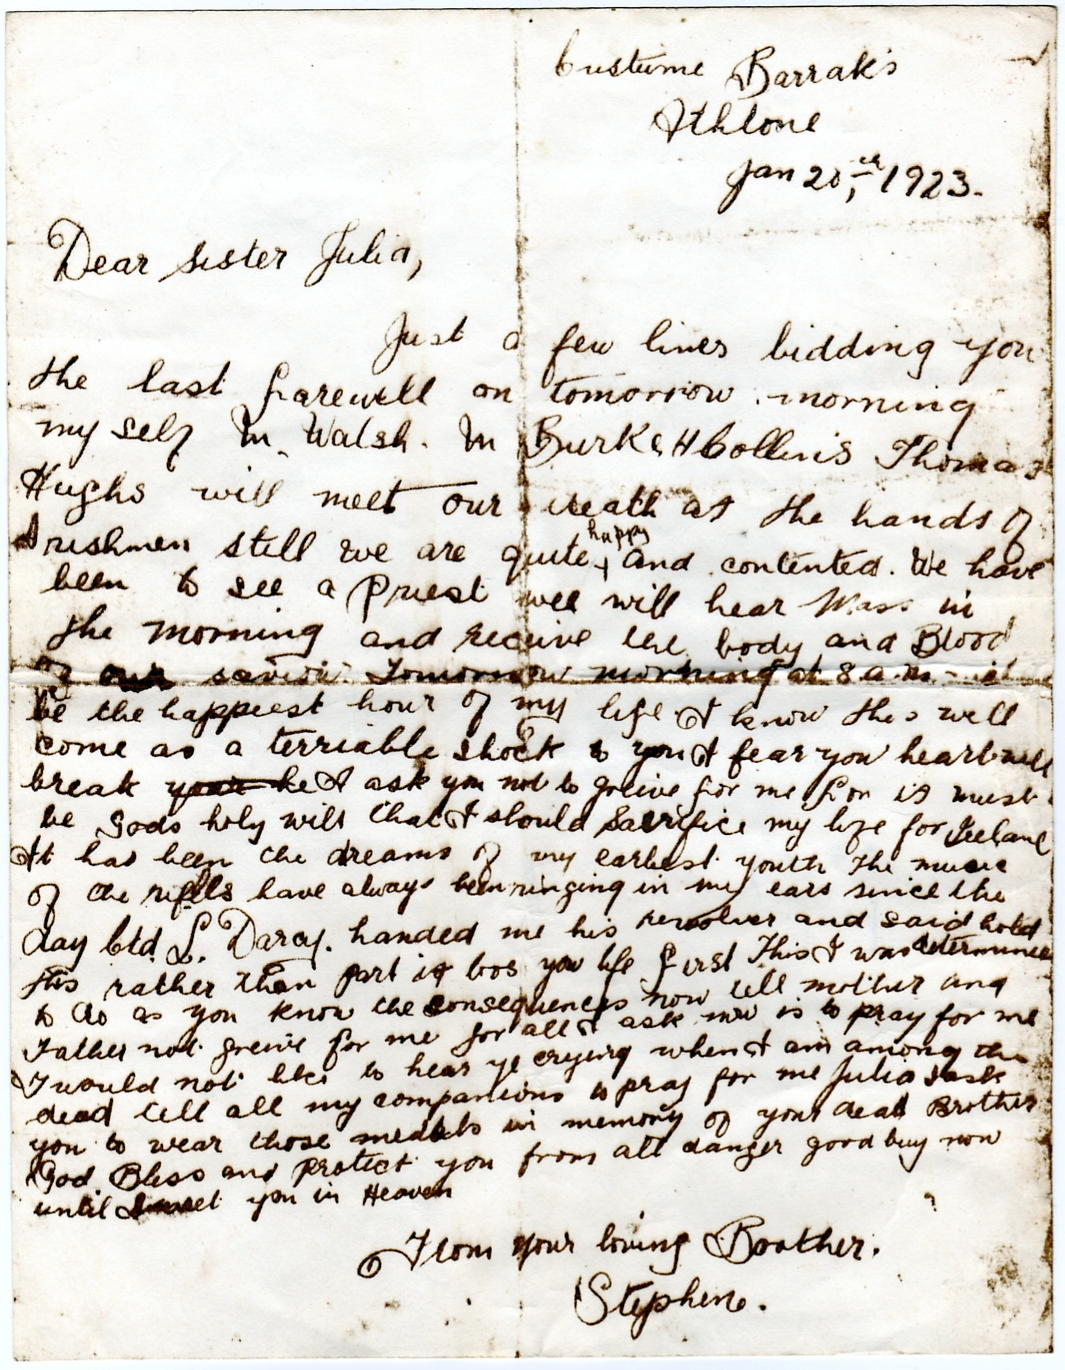 Stephen Joyce execution letter